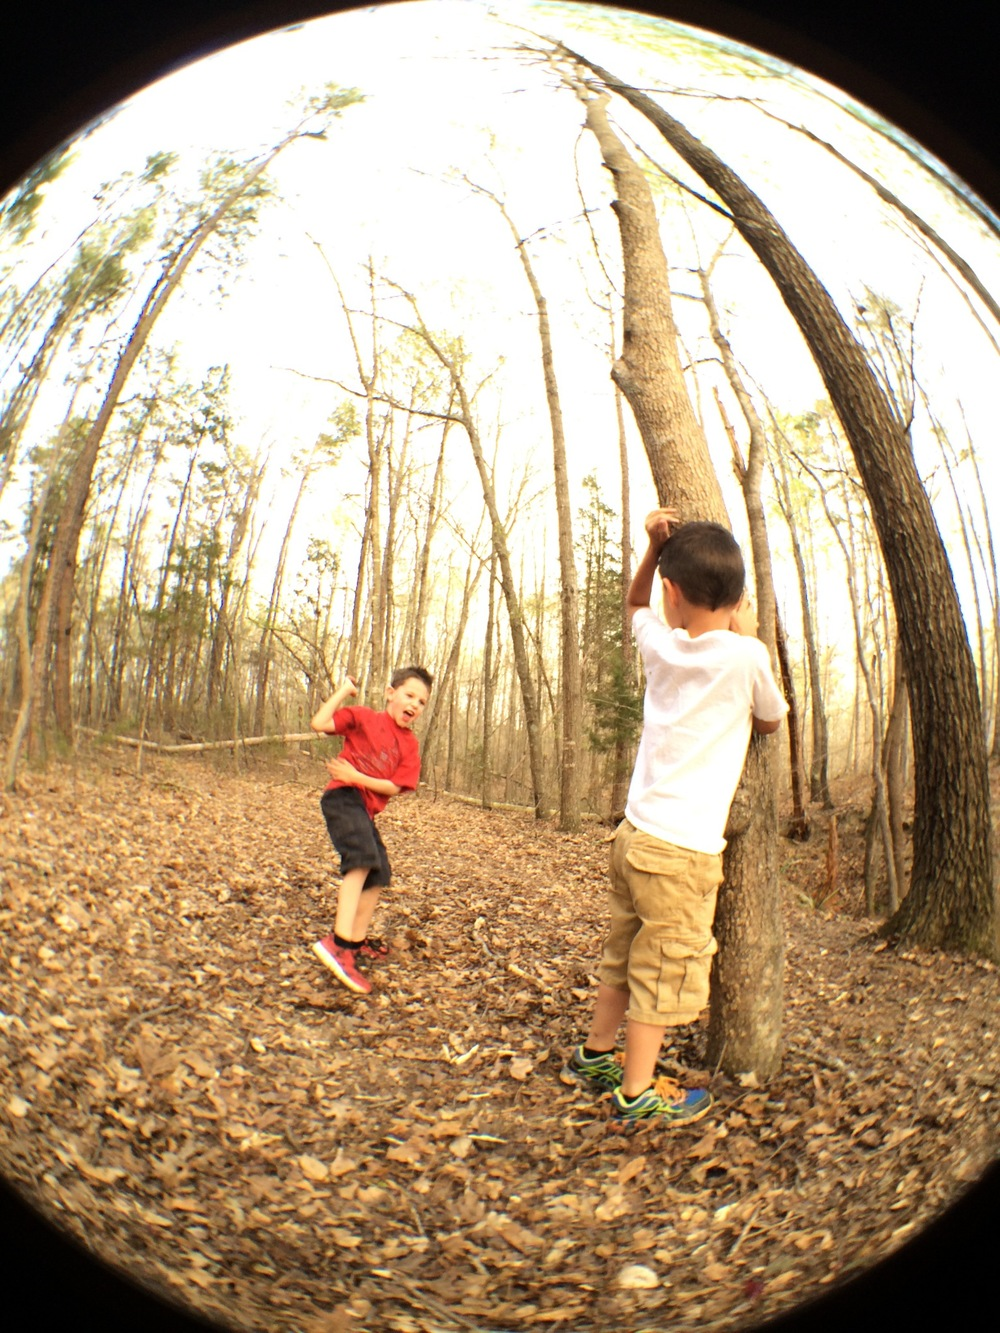 boys in woods.jpg